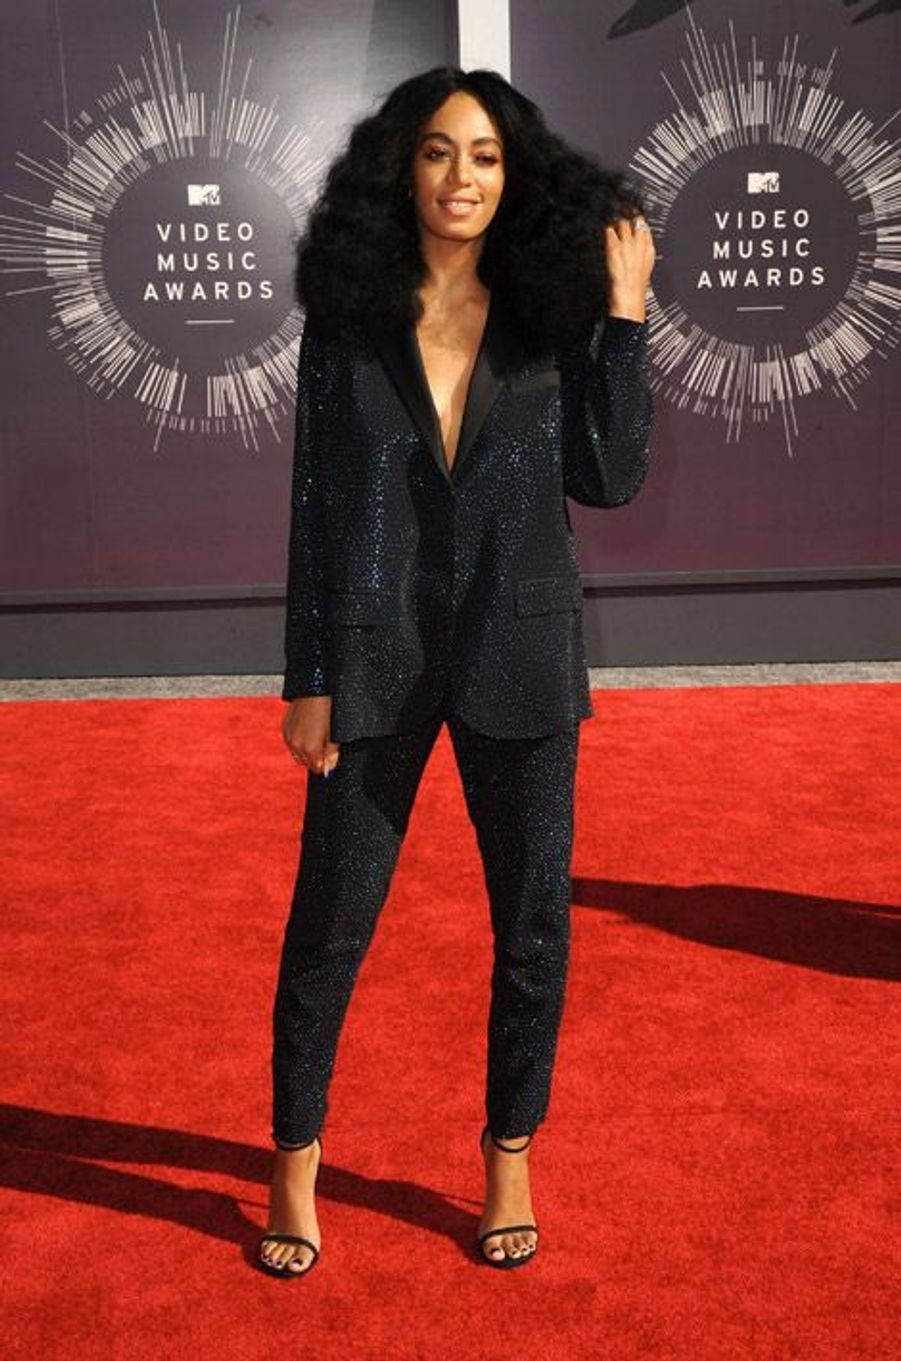 La chanteuse américiane Solange Knowles lors de la cérémonie des MTV Video Music Awards à Los Angeles, le 24 août 2014